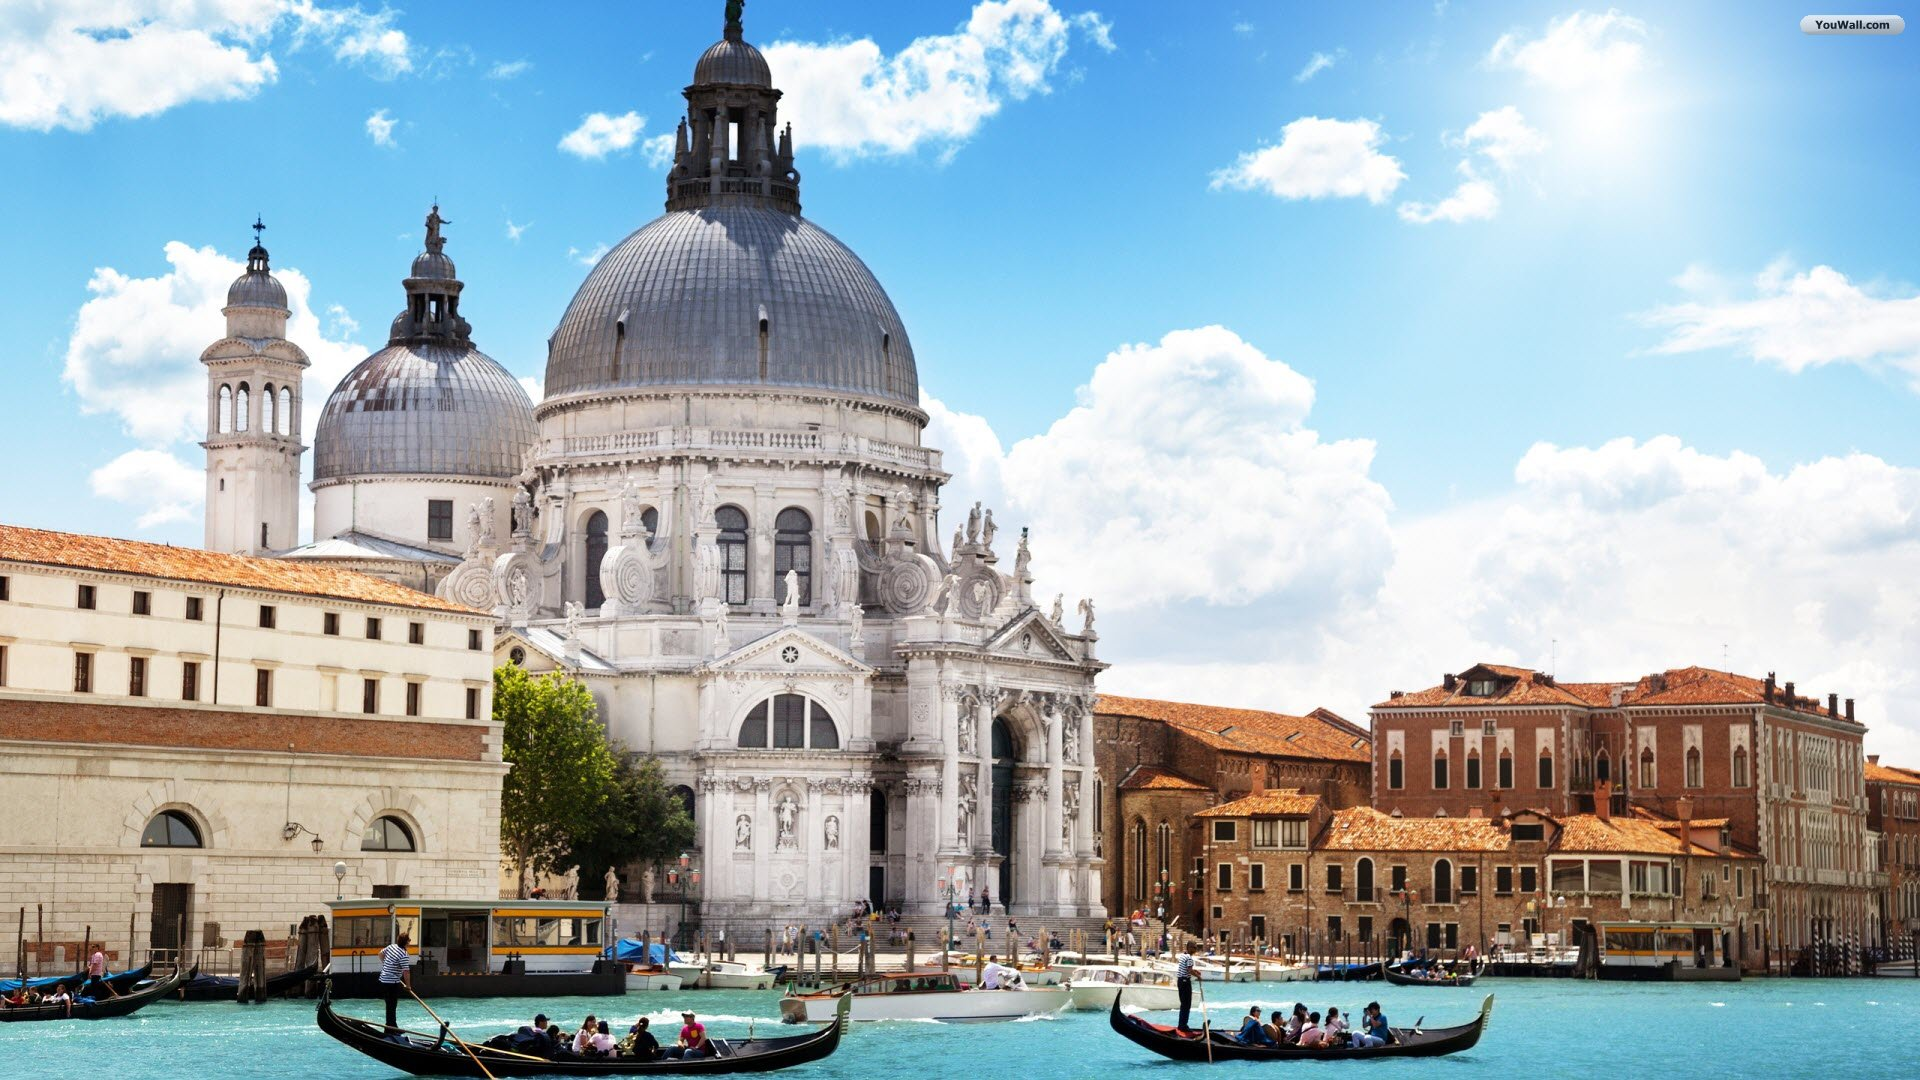 Venice Wallpaper   wallpaperwallpapersfree wallpaperphotodesktop 1920x1080